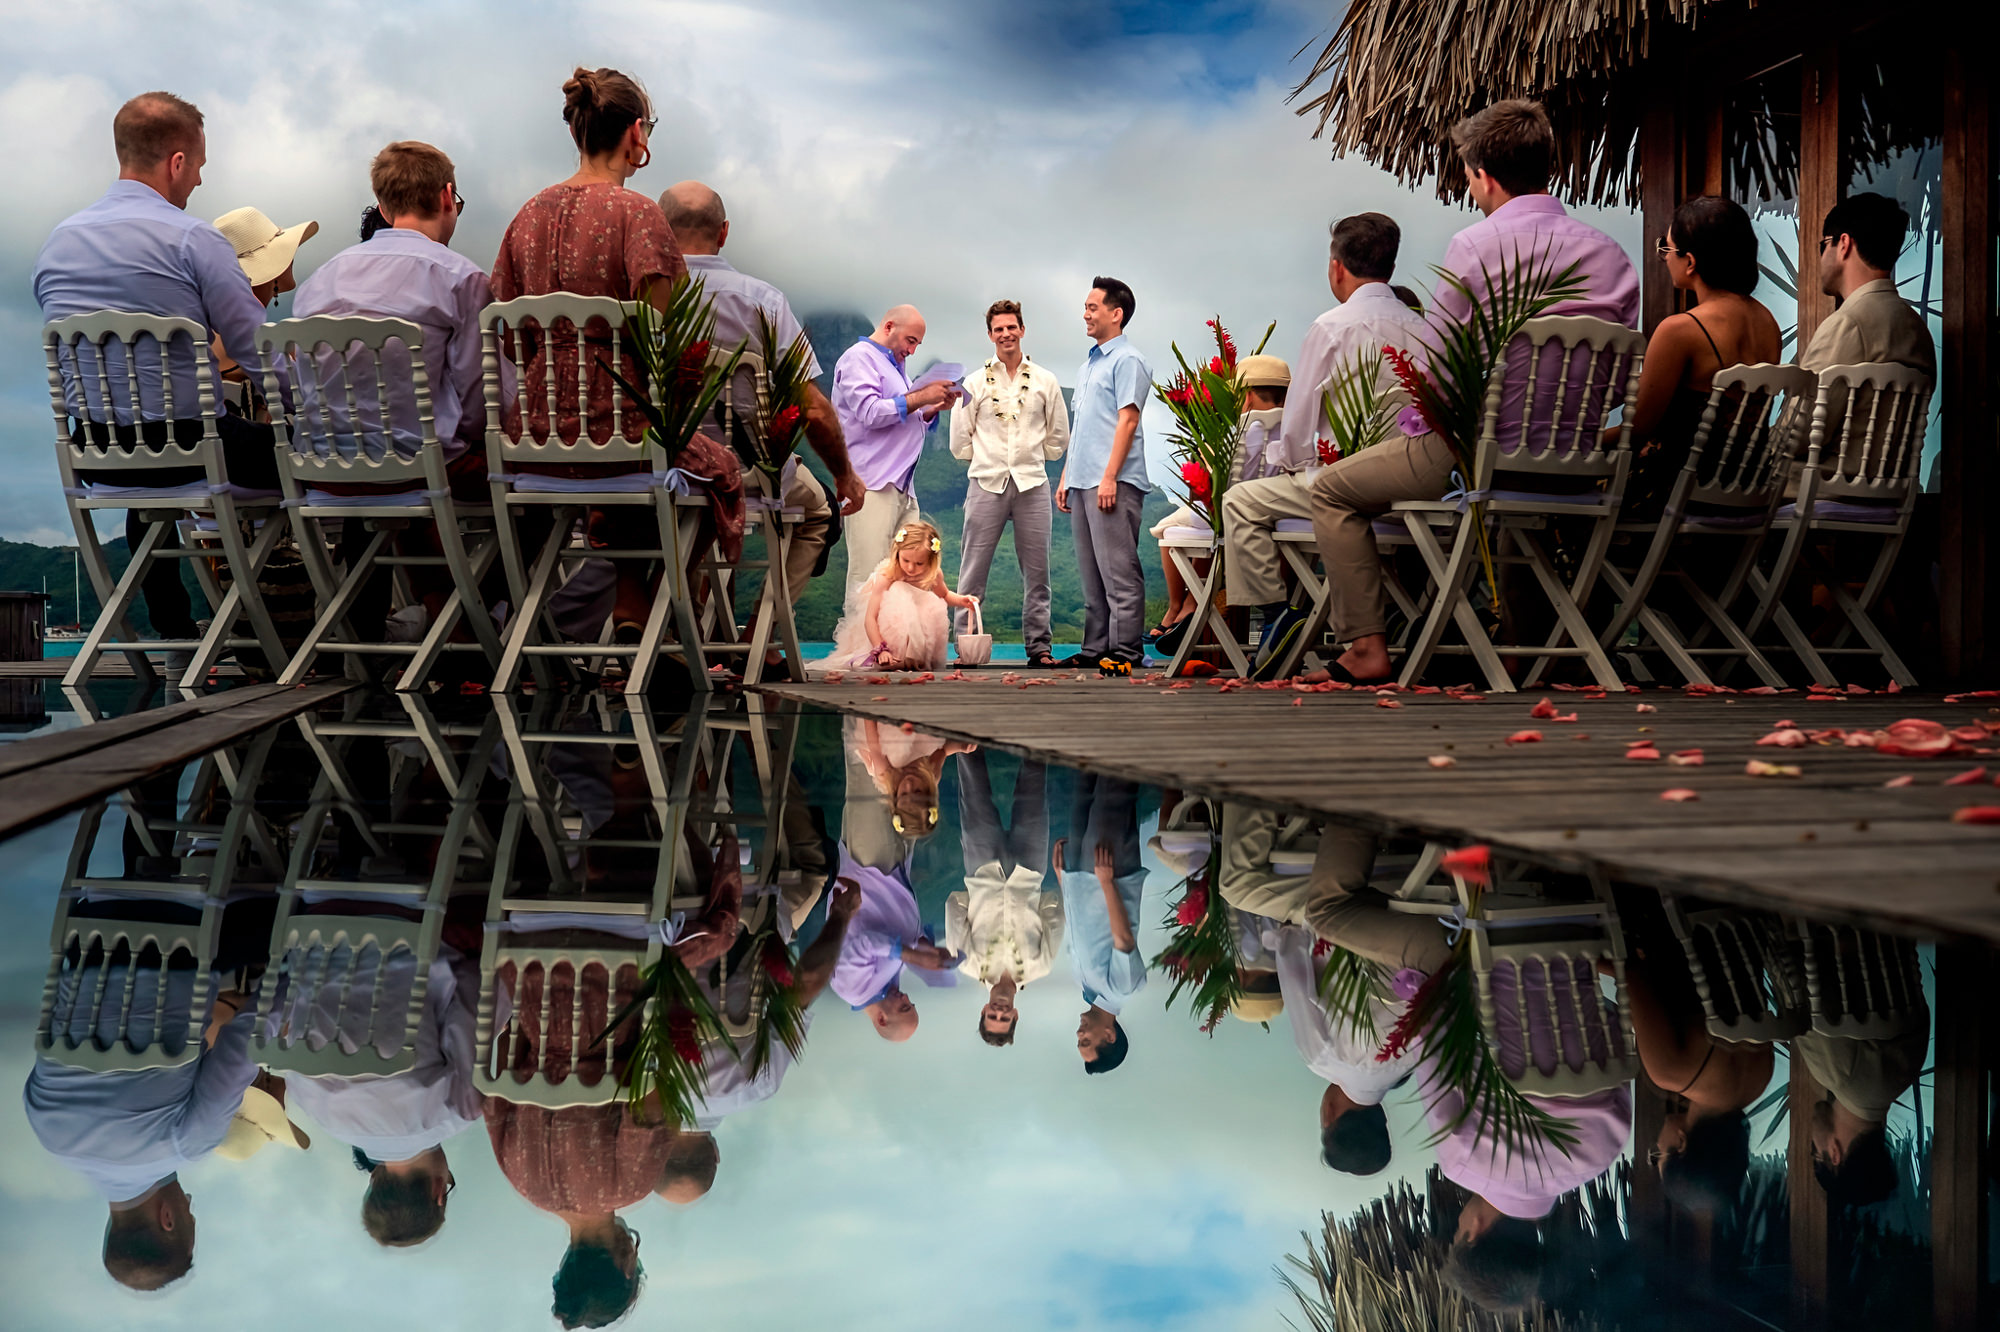 Waterfront wedding with pool reflection - photo by Chrisman Studios